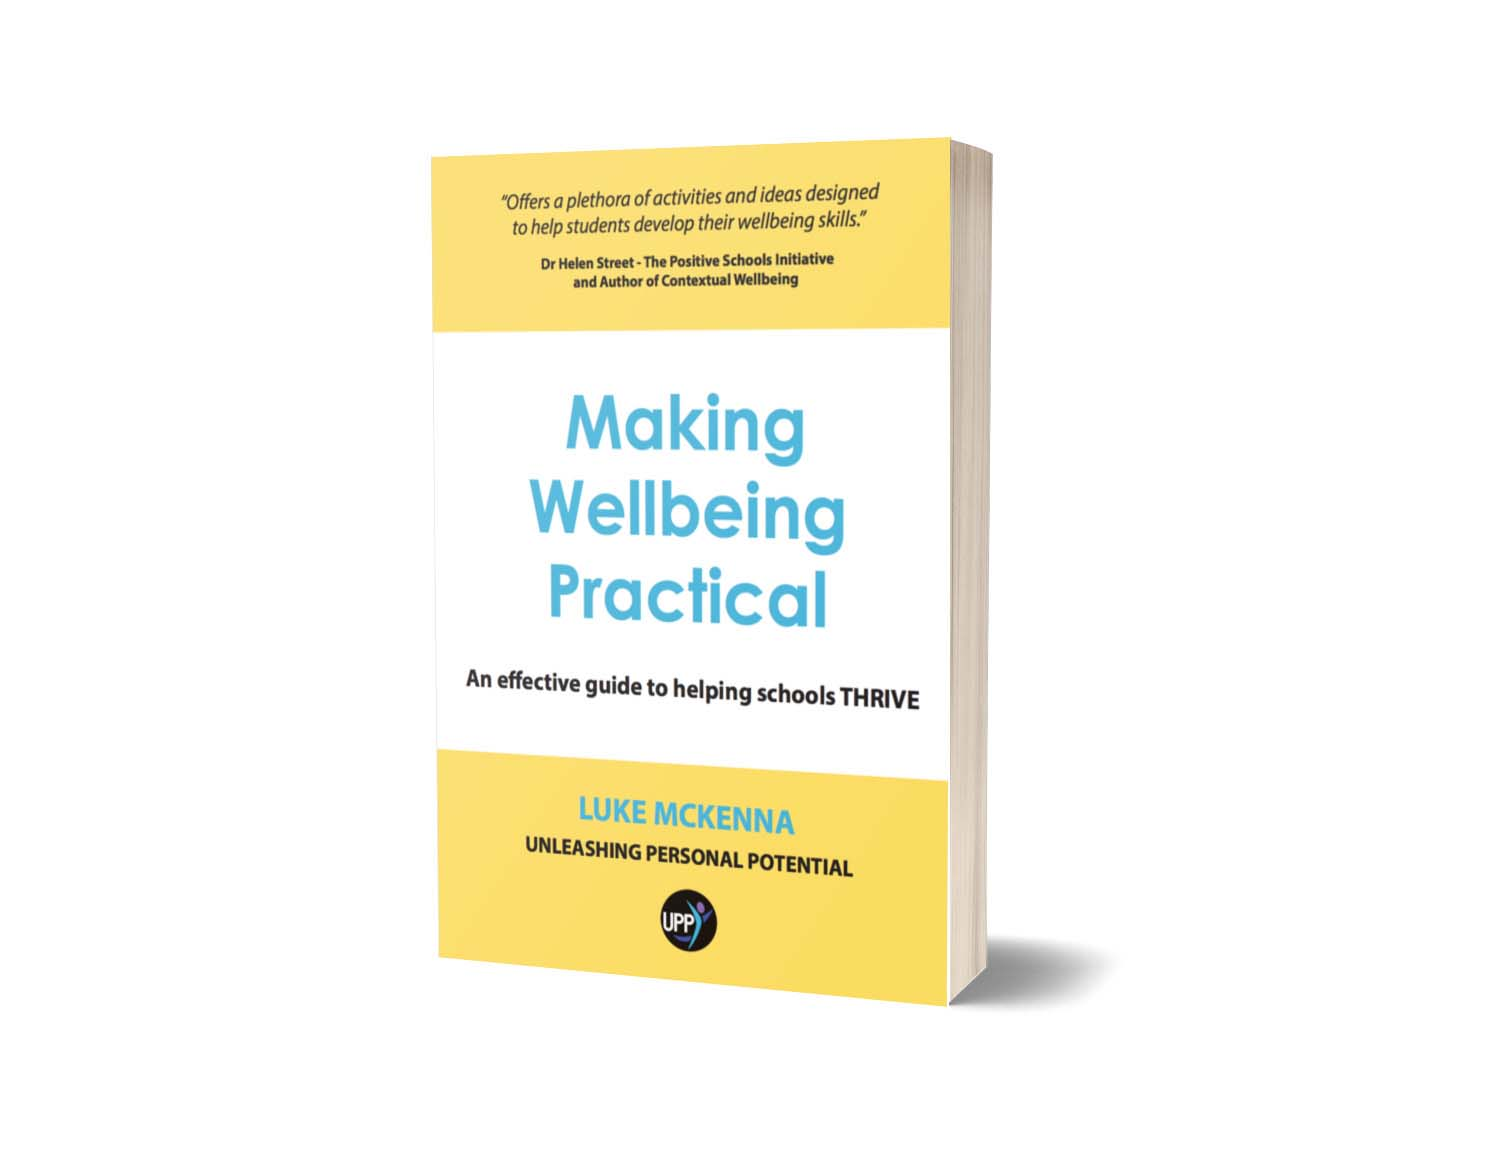 Get the Making Wellbeing Practical eBook